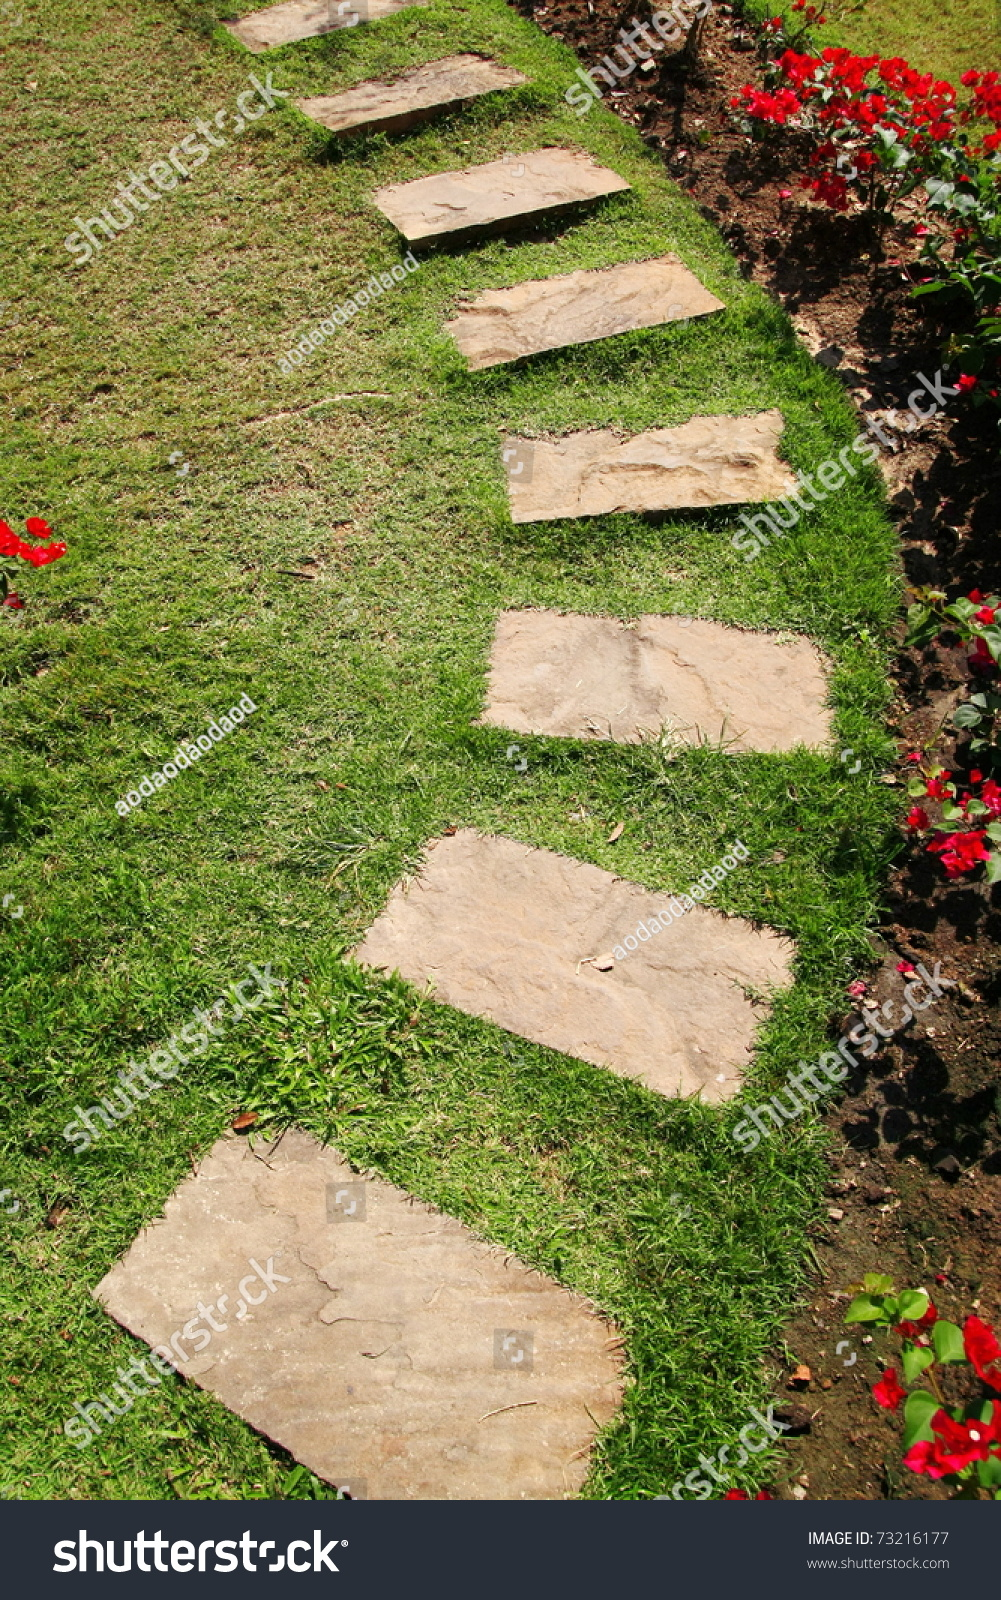 Stone walk way in garden stock photo 73216177 shutterstock for Landscaping rocks you can walk on